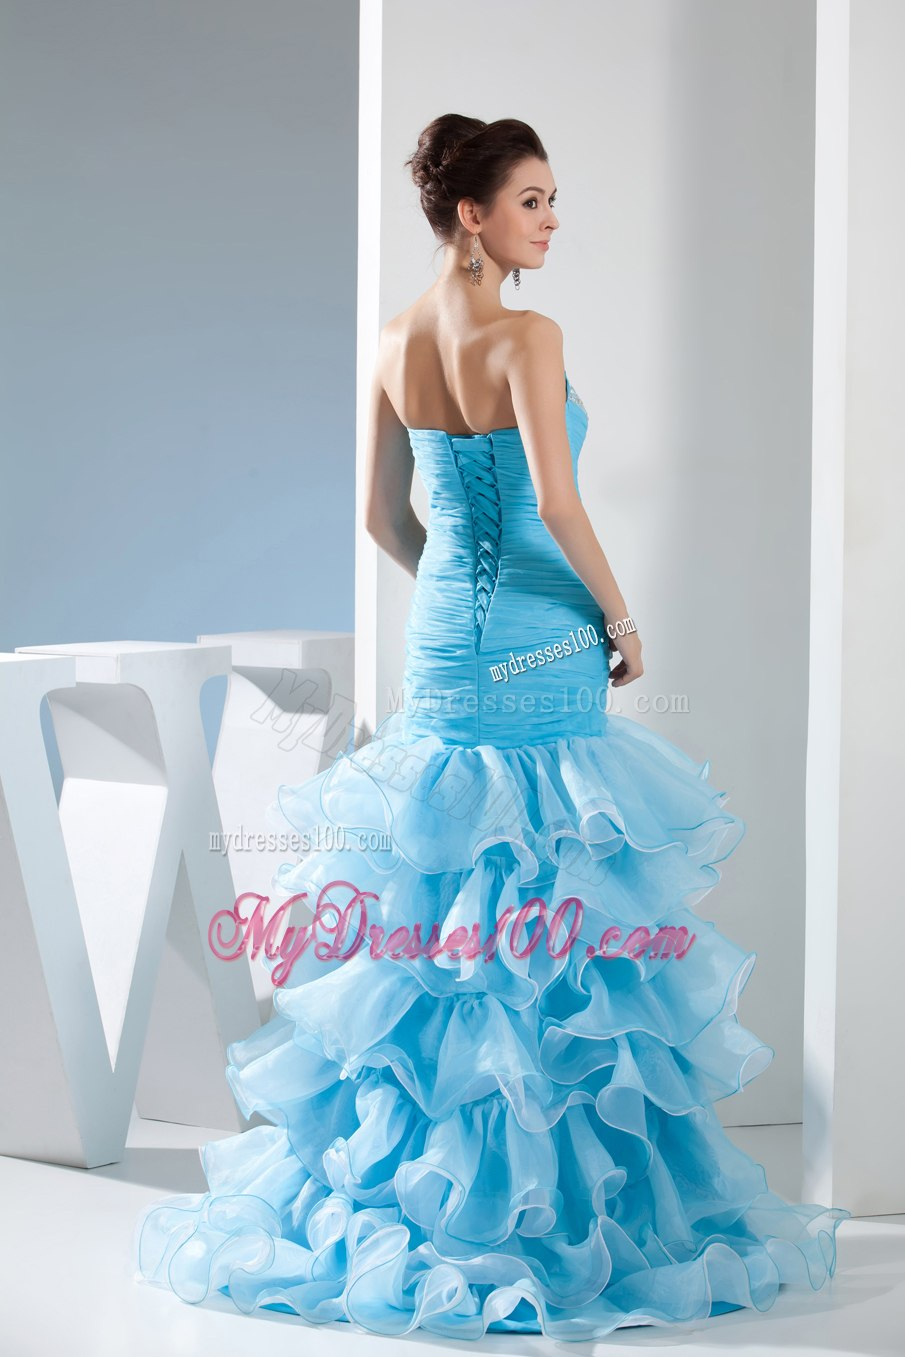 Mermaid Sweetheart High-low Aqua Blue Celebrity Dresses